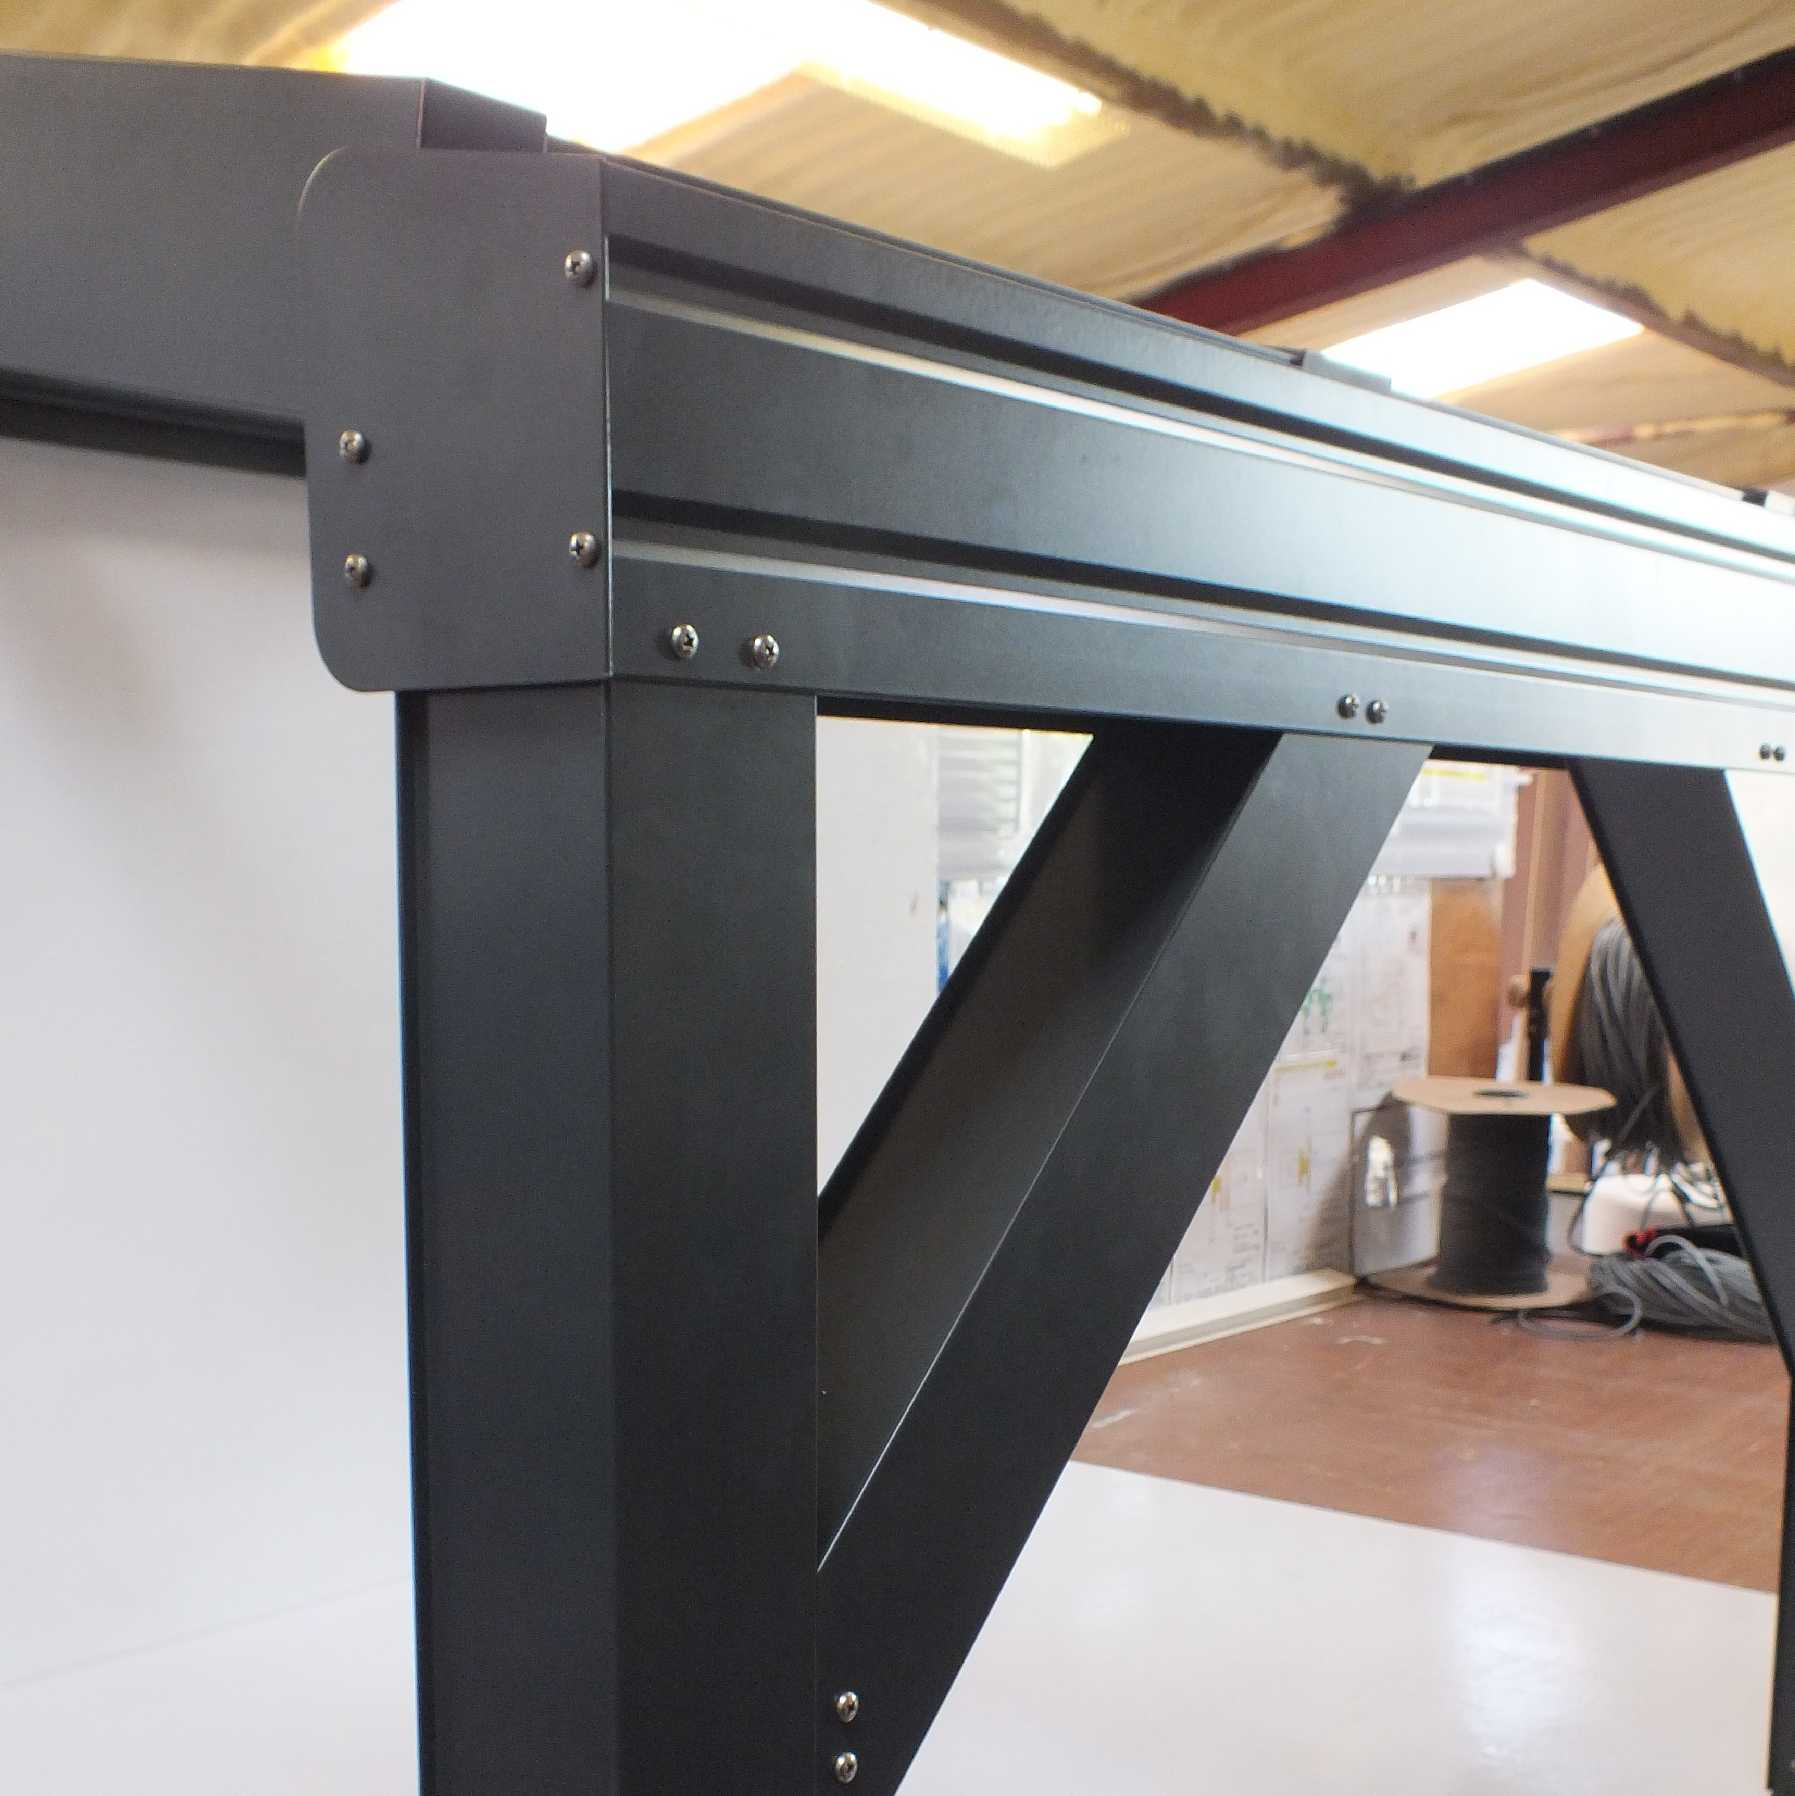 Omega Smart Lean-To Canopy, Anthracite Grey, UNGLAZED for 6mm Glazing - 4.9m (W) x 1.5m (P), (3) Supporting Posts from Omega Build